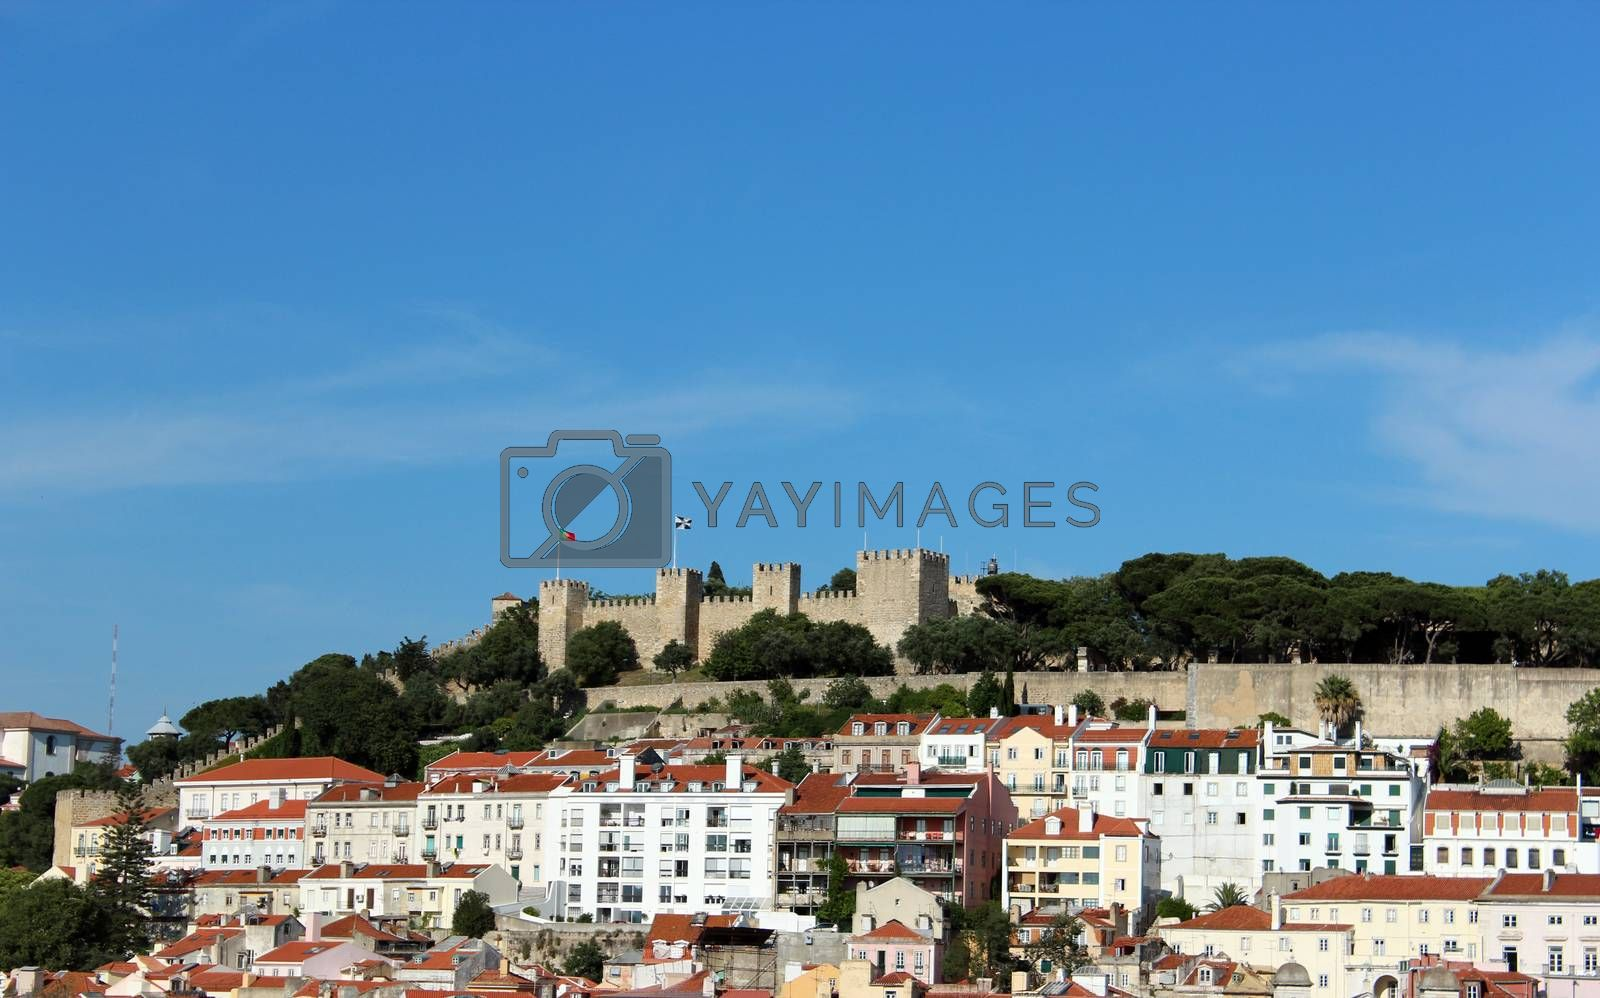 Royalty free image of Saint George's Castle in Lisbon by aamulya